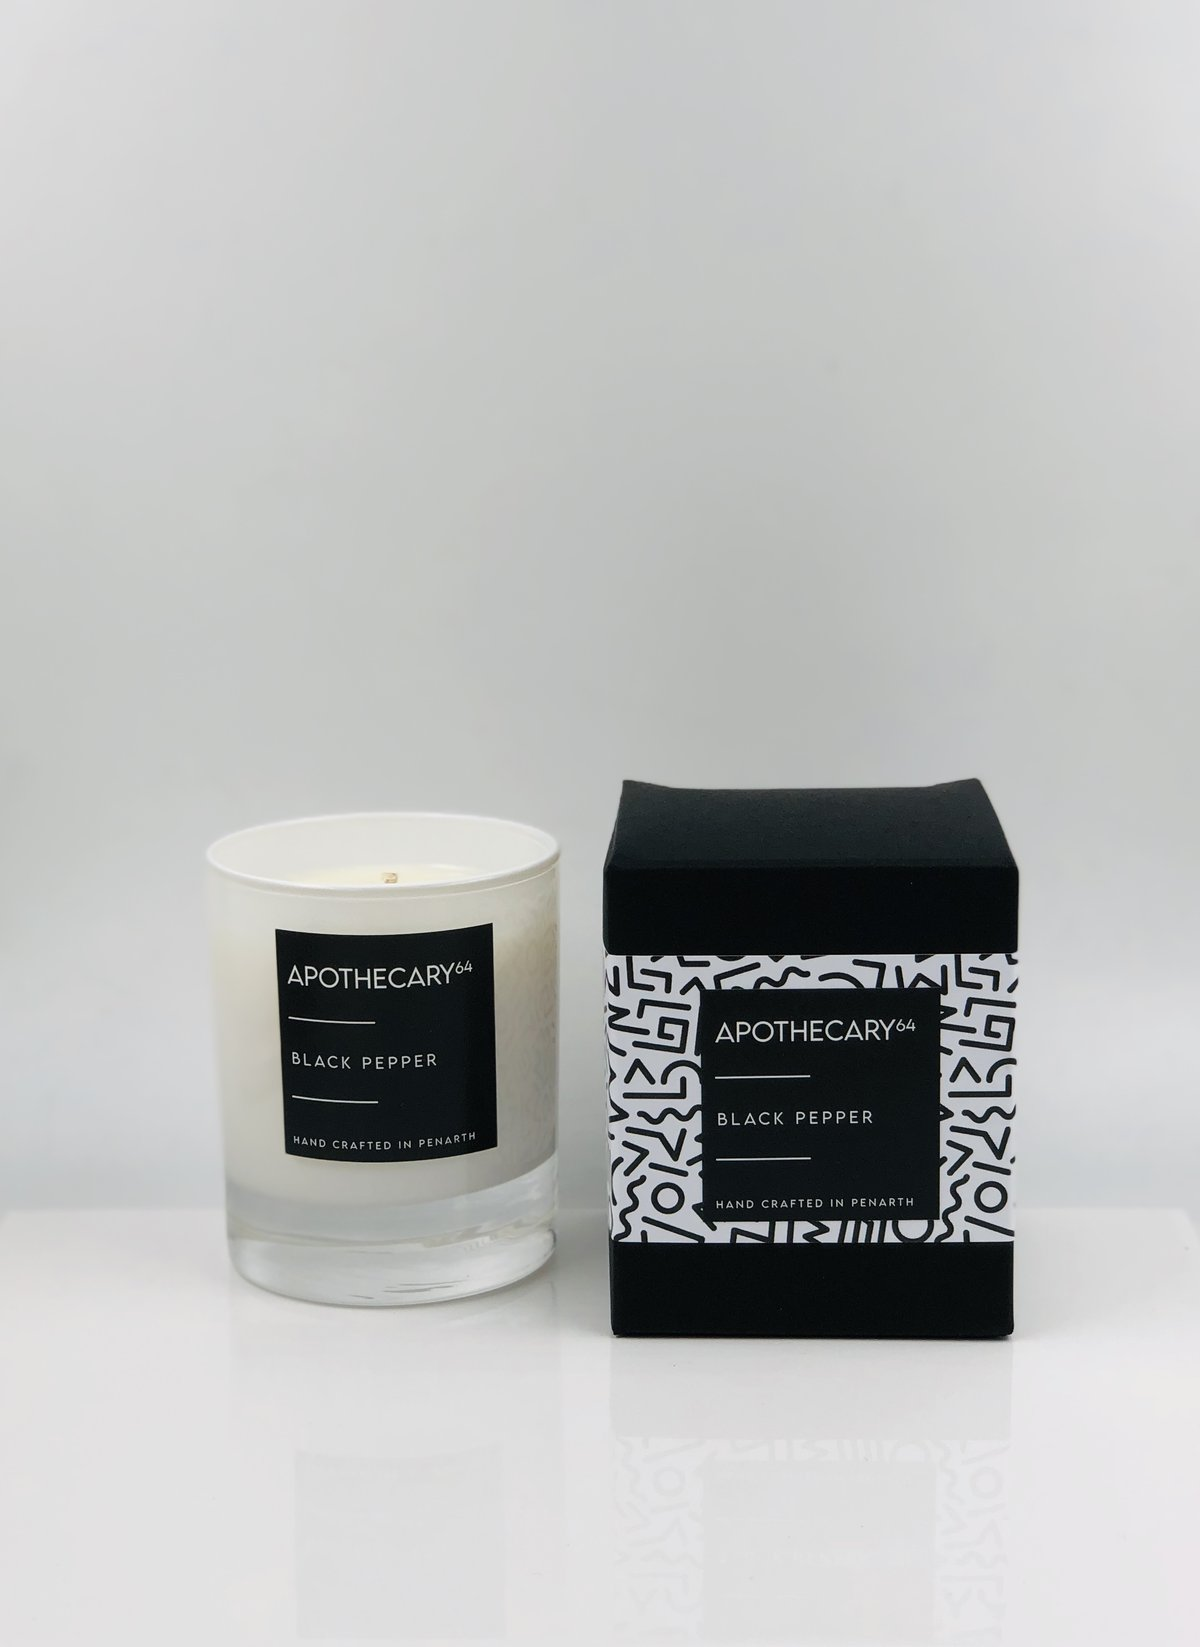 Apothecary 64 - Black Pepper